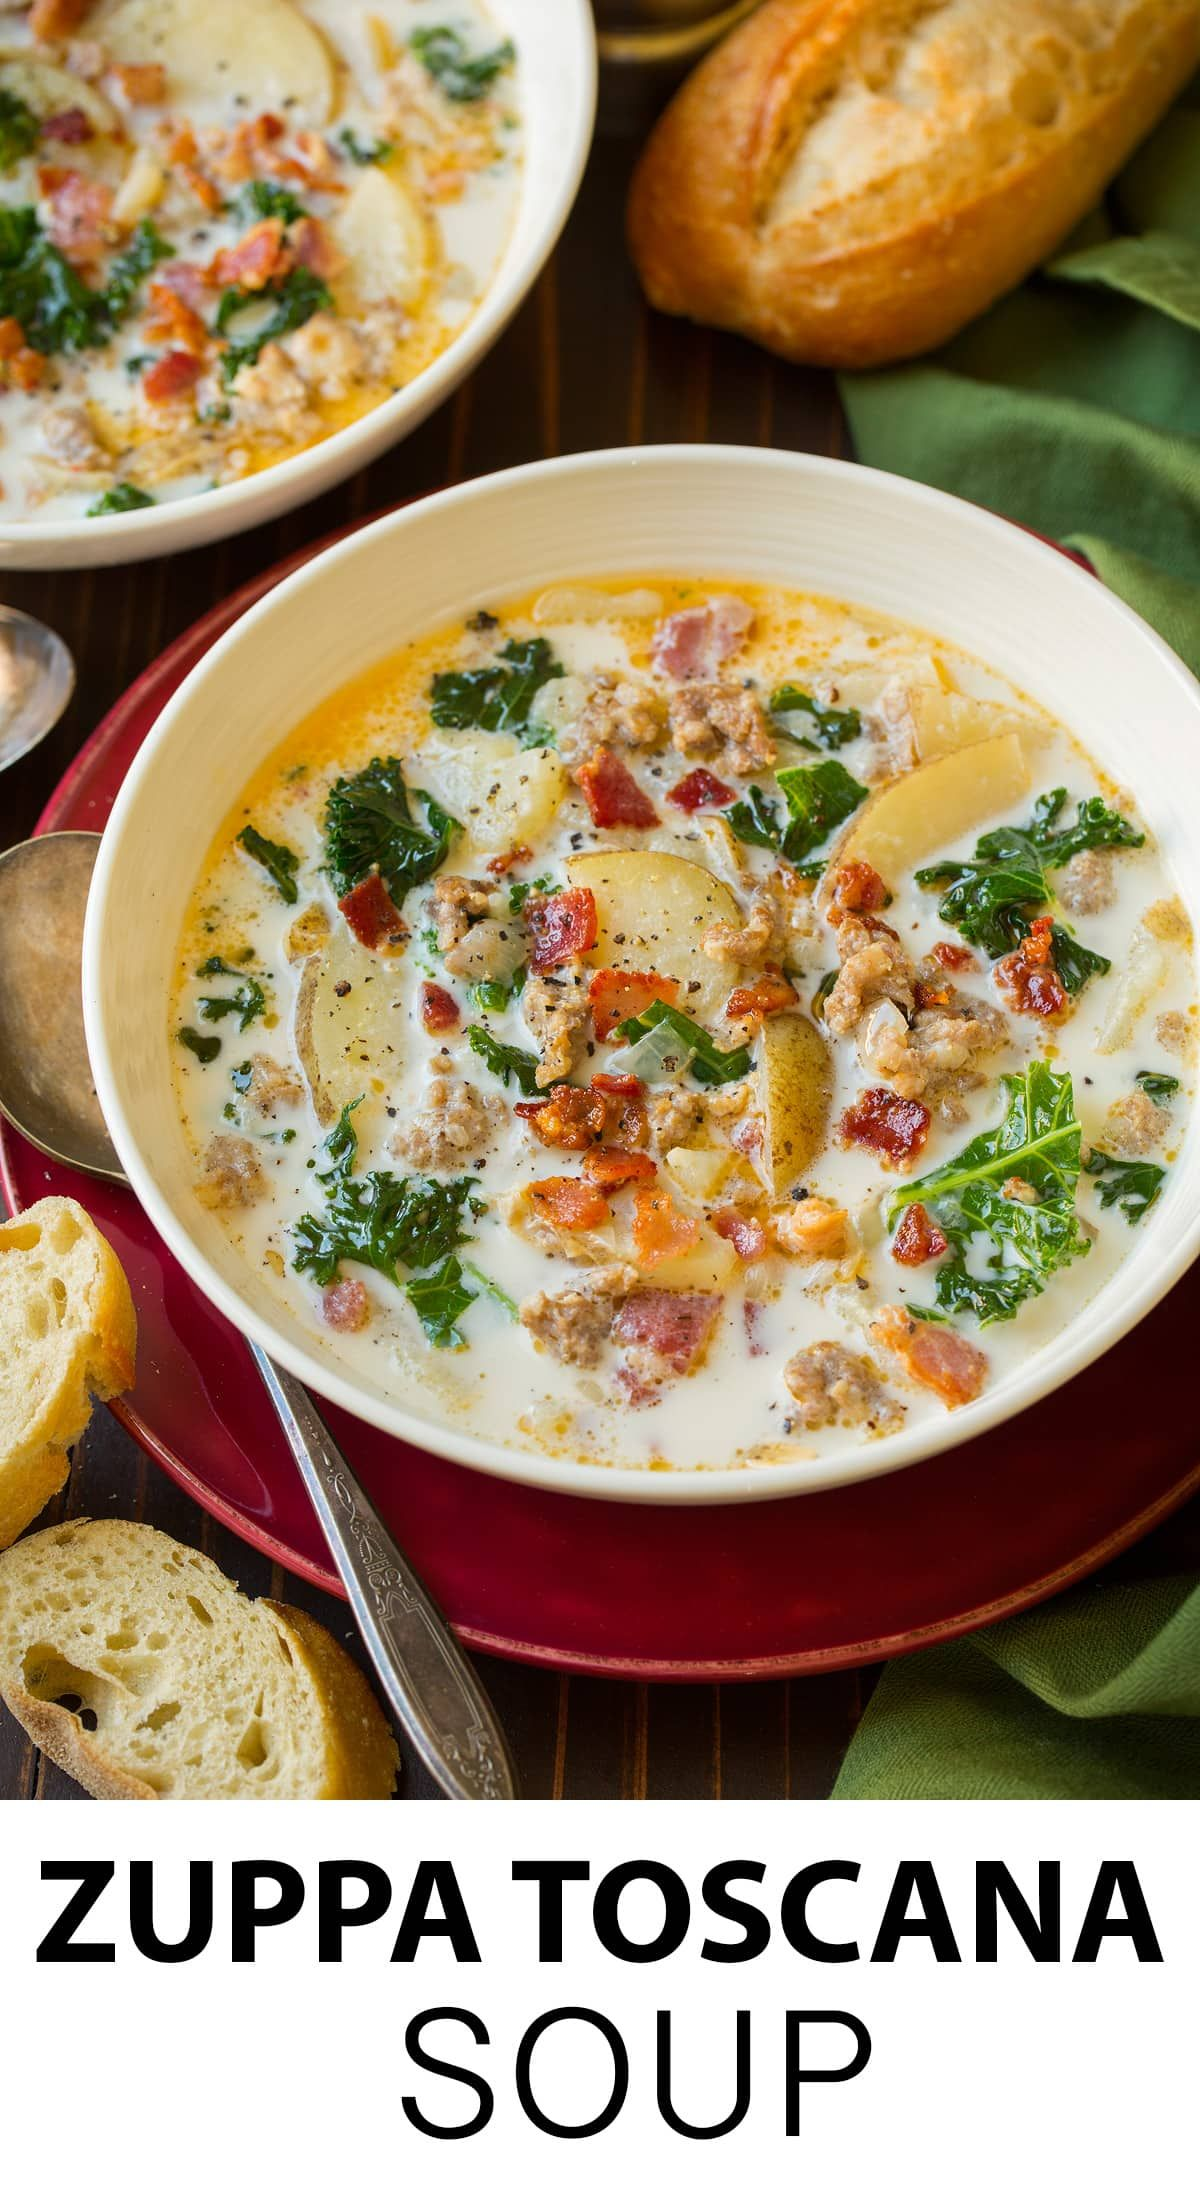 Zuppa Toscana - this is one of the tastiest most comforting soups! Easy to make and it has such a delicious flavor!